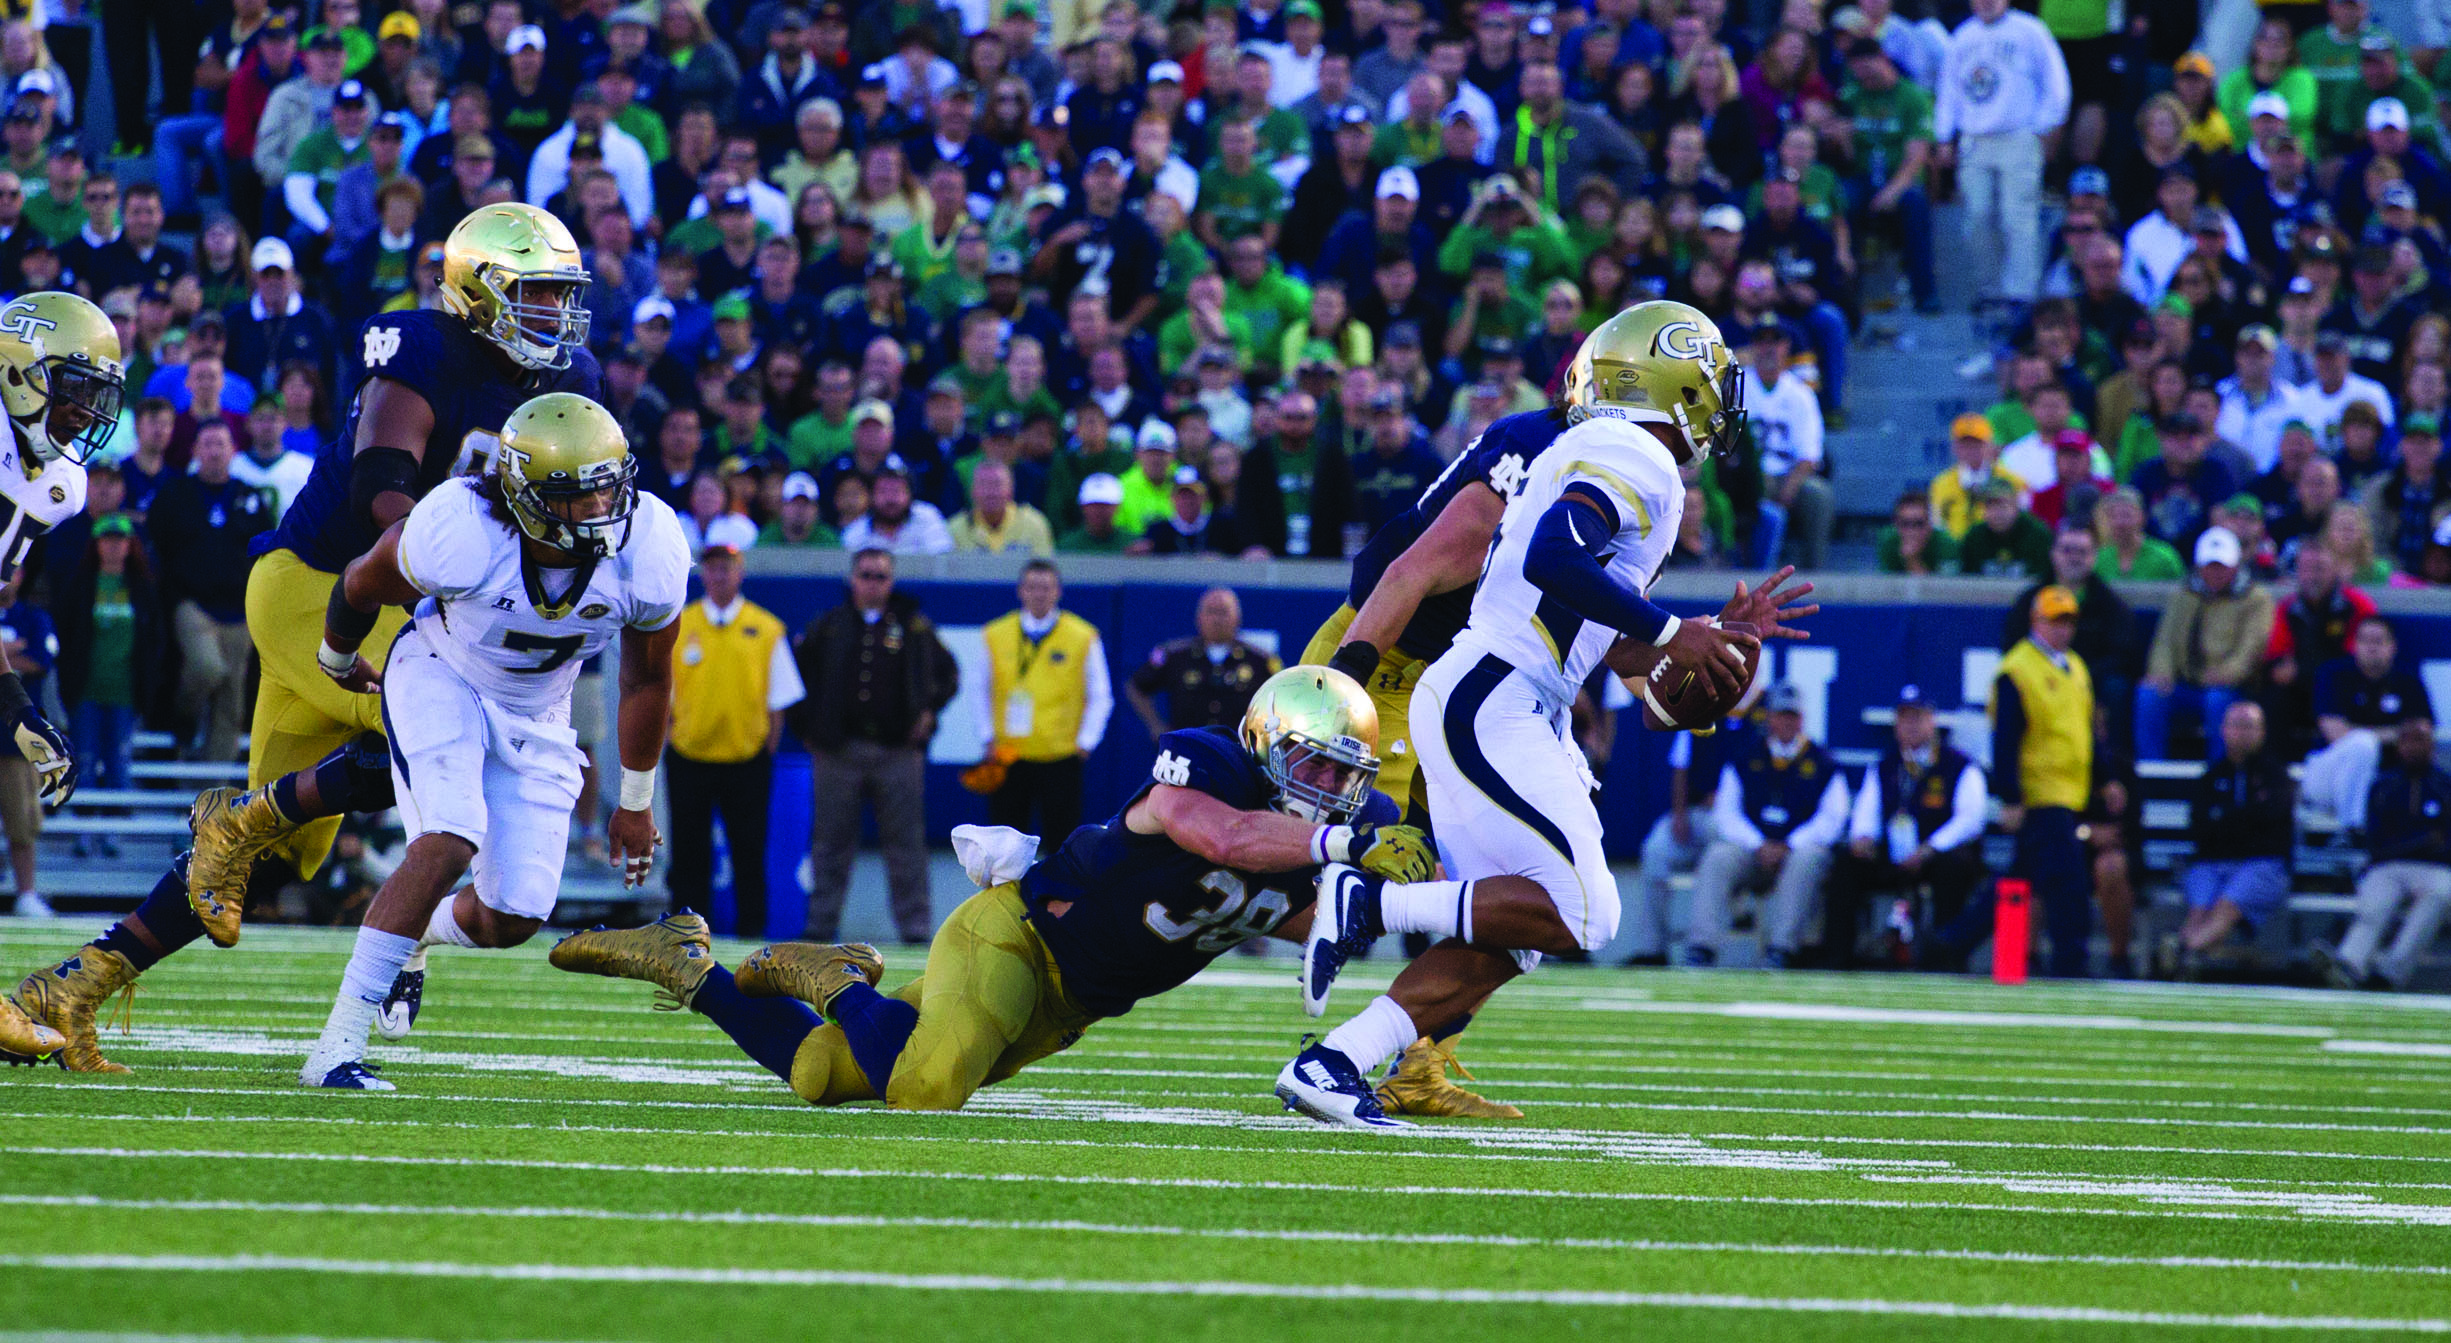 Irish graduate student linebacker Joe Schmidt, right, dives in an attempt to tackle Georgia Tech redshirt junior quarterback Justin Thomas during Notre Dame's 30-22 win at Notre Dame Stadium on Saturday. Schmidt led the Irish defense with 10 tackles, including two for a loss.